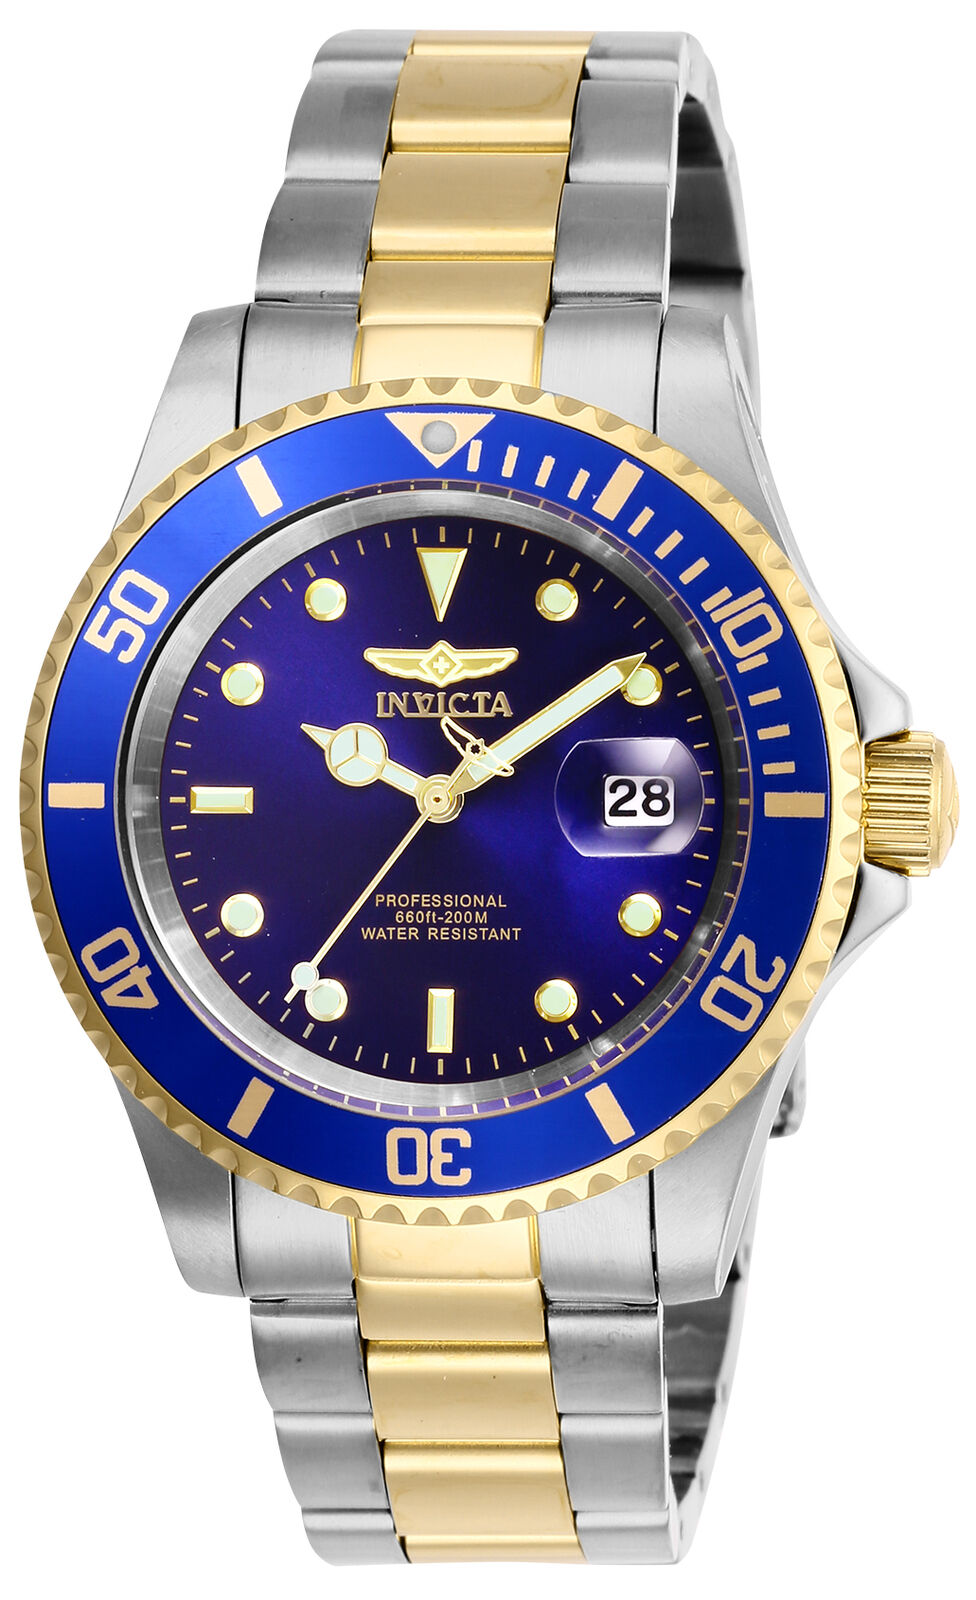 Invicta Men's Pro Diver Stainless Steel 40MM Watch- Choose Color (26970 - 26975